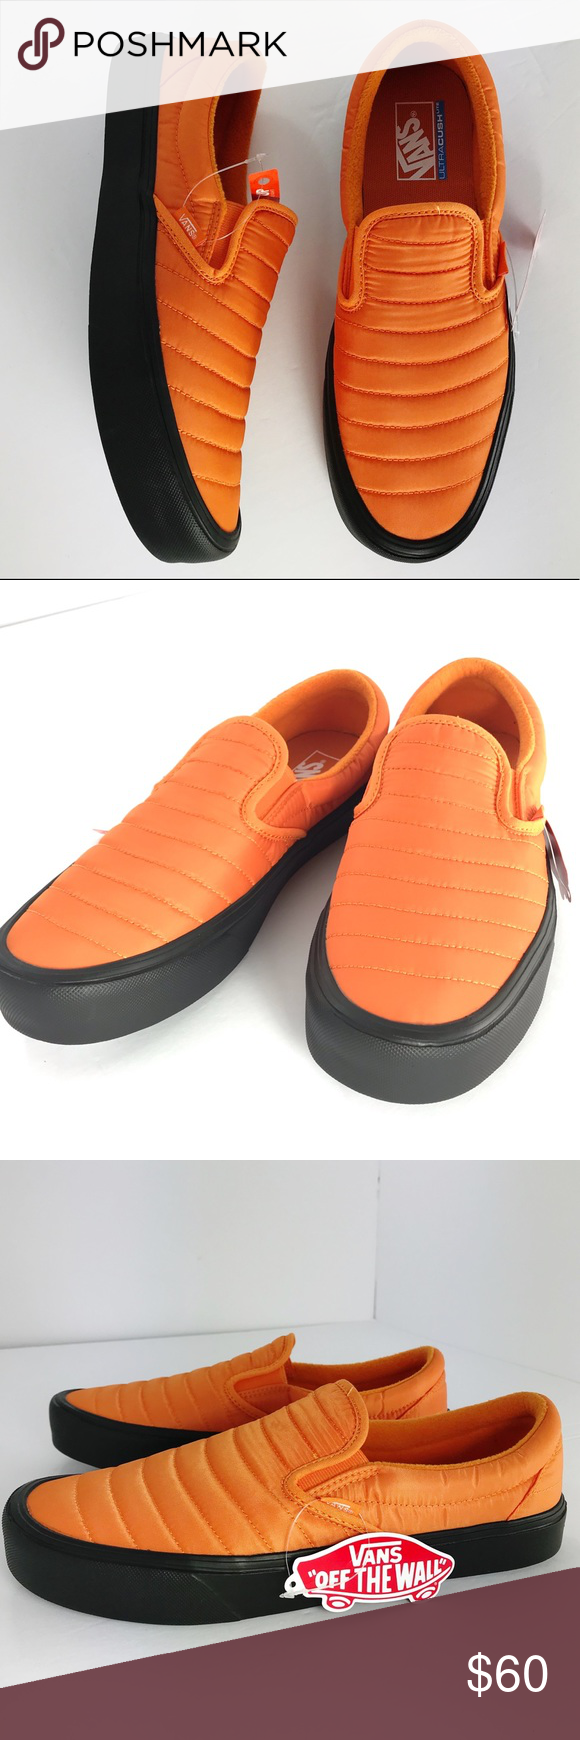 7a94774b3fc Vans Quilted Lite Slip On Vans Quilted Slip On Lite in Orange. Ultra Cush  insole. Super Lightweight. Men s size 12. New without box. Vans Shoes  Sneakers